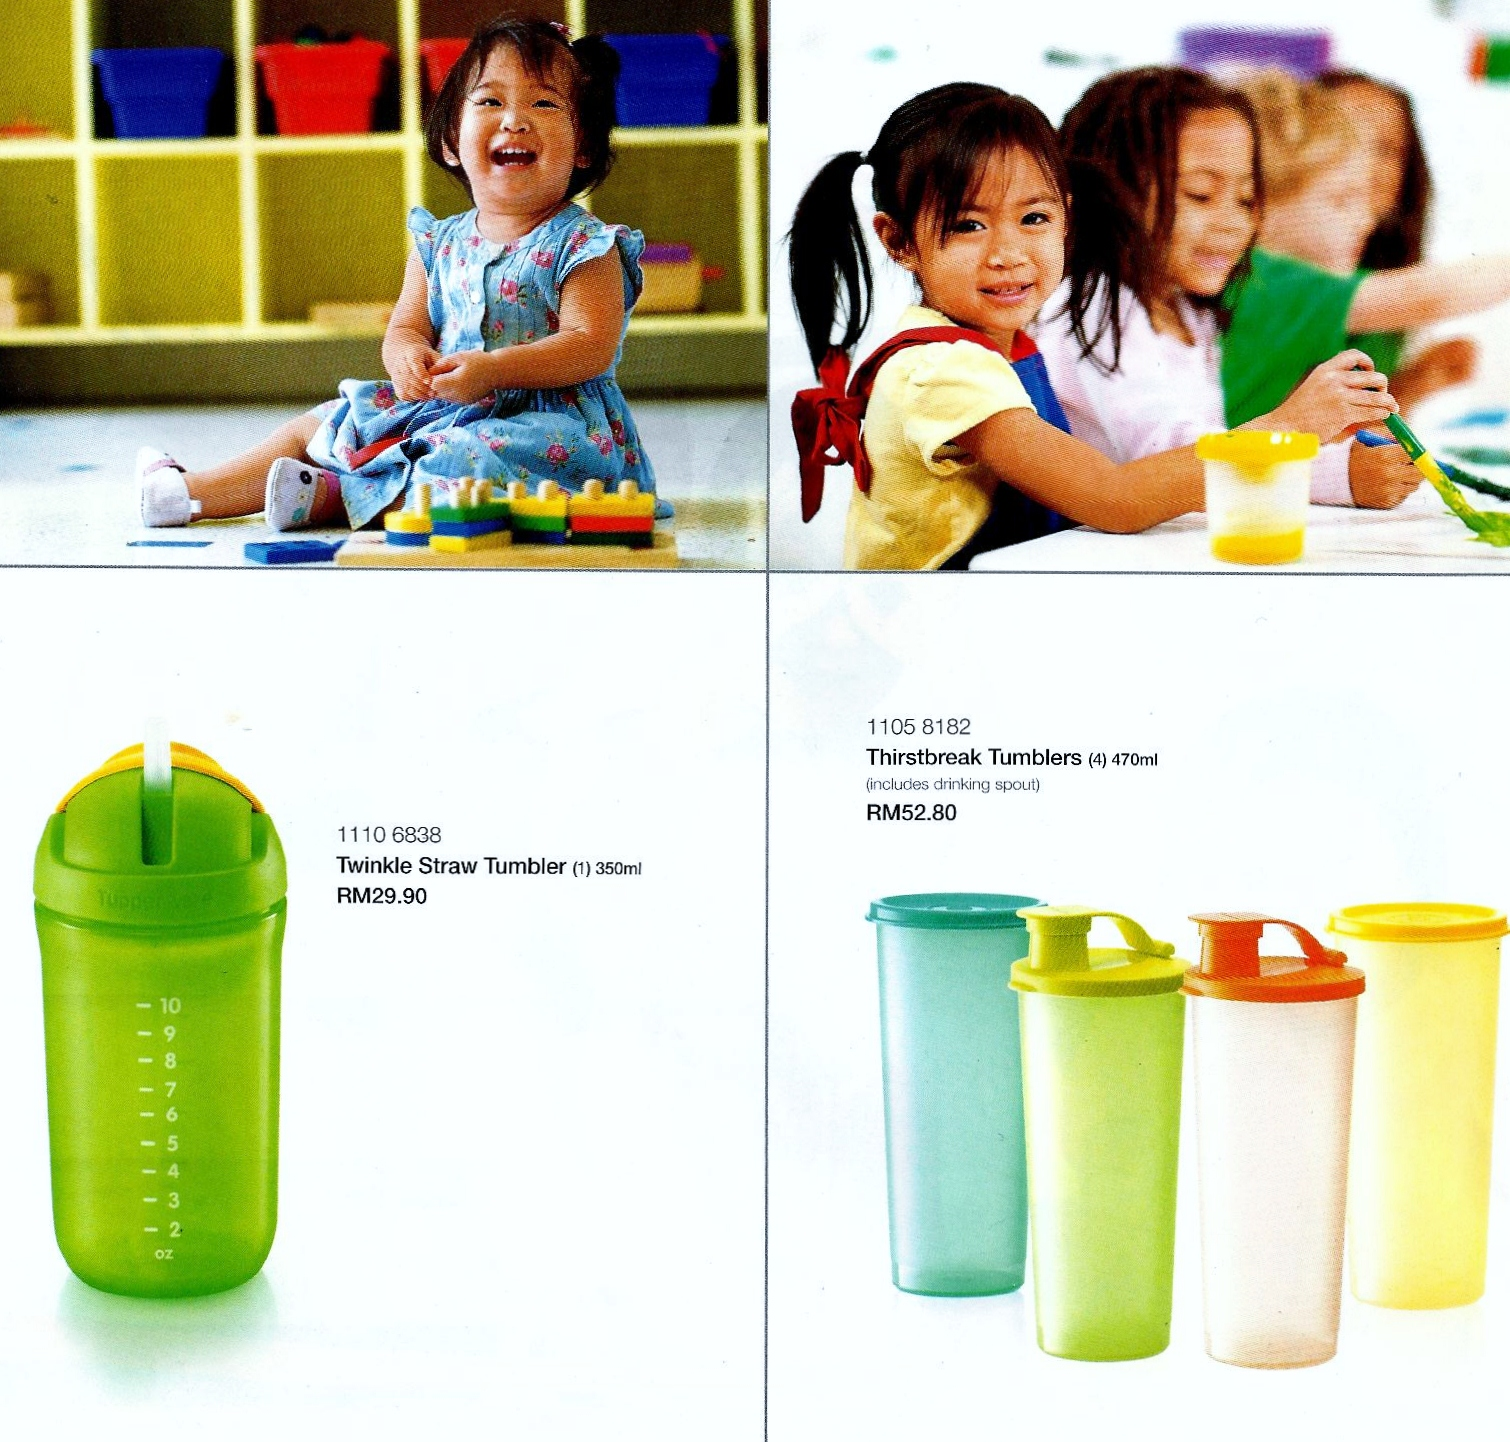 Tupperware Katalog April - May 2013 - Paling HOT dengan produk baru